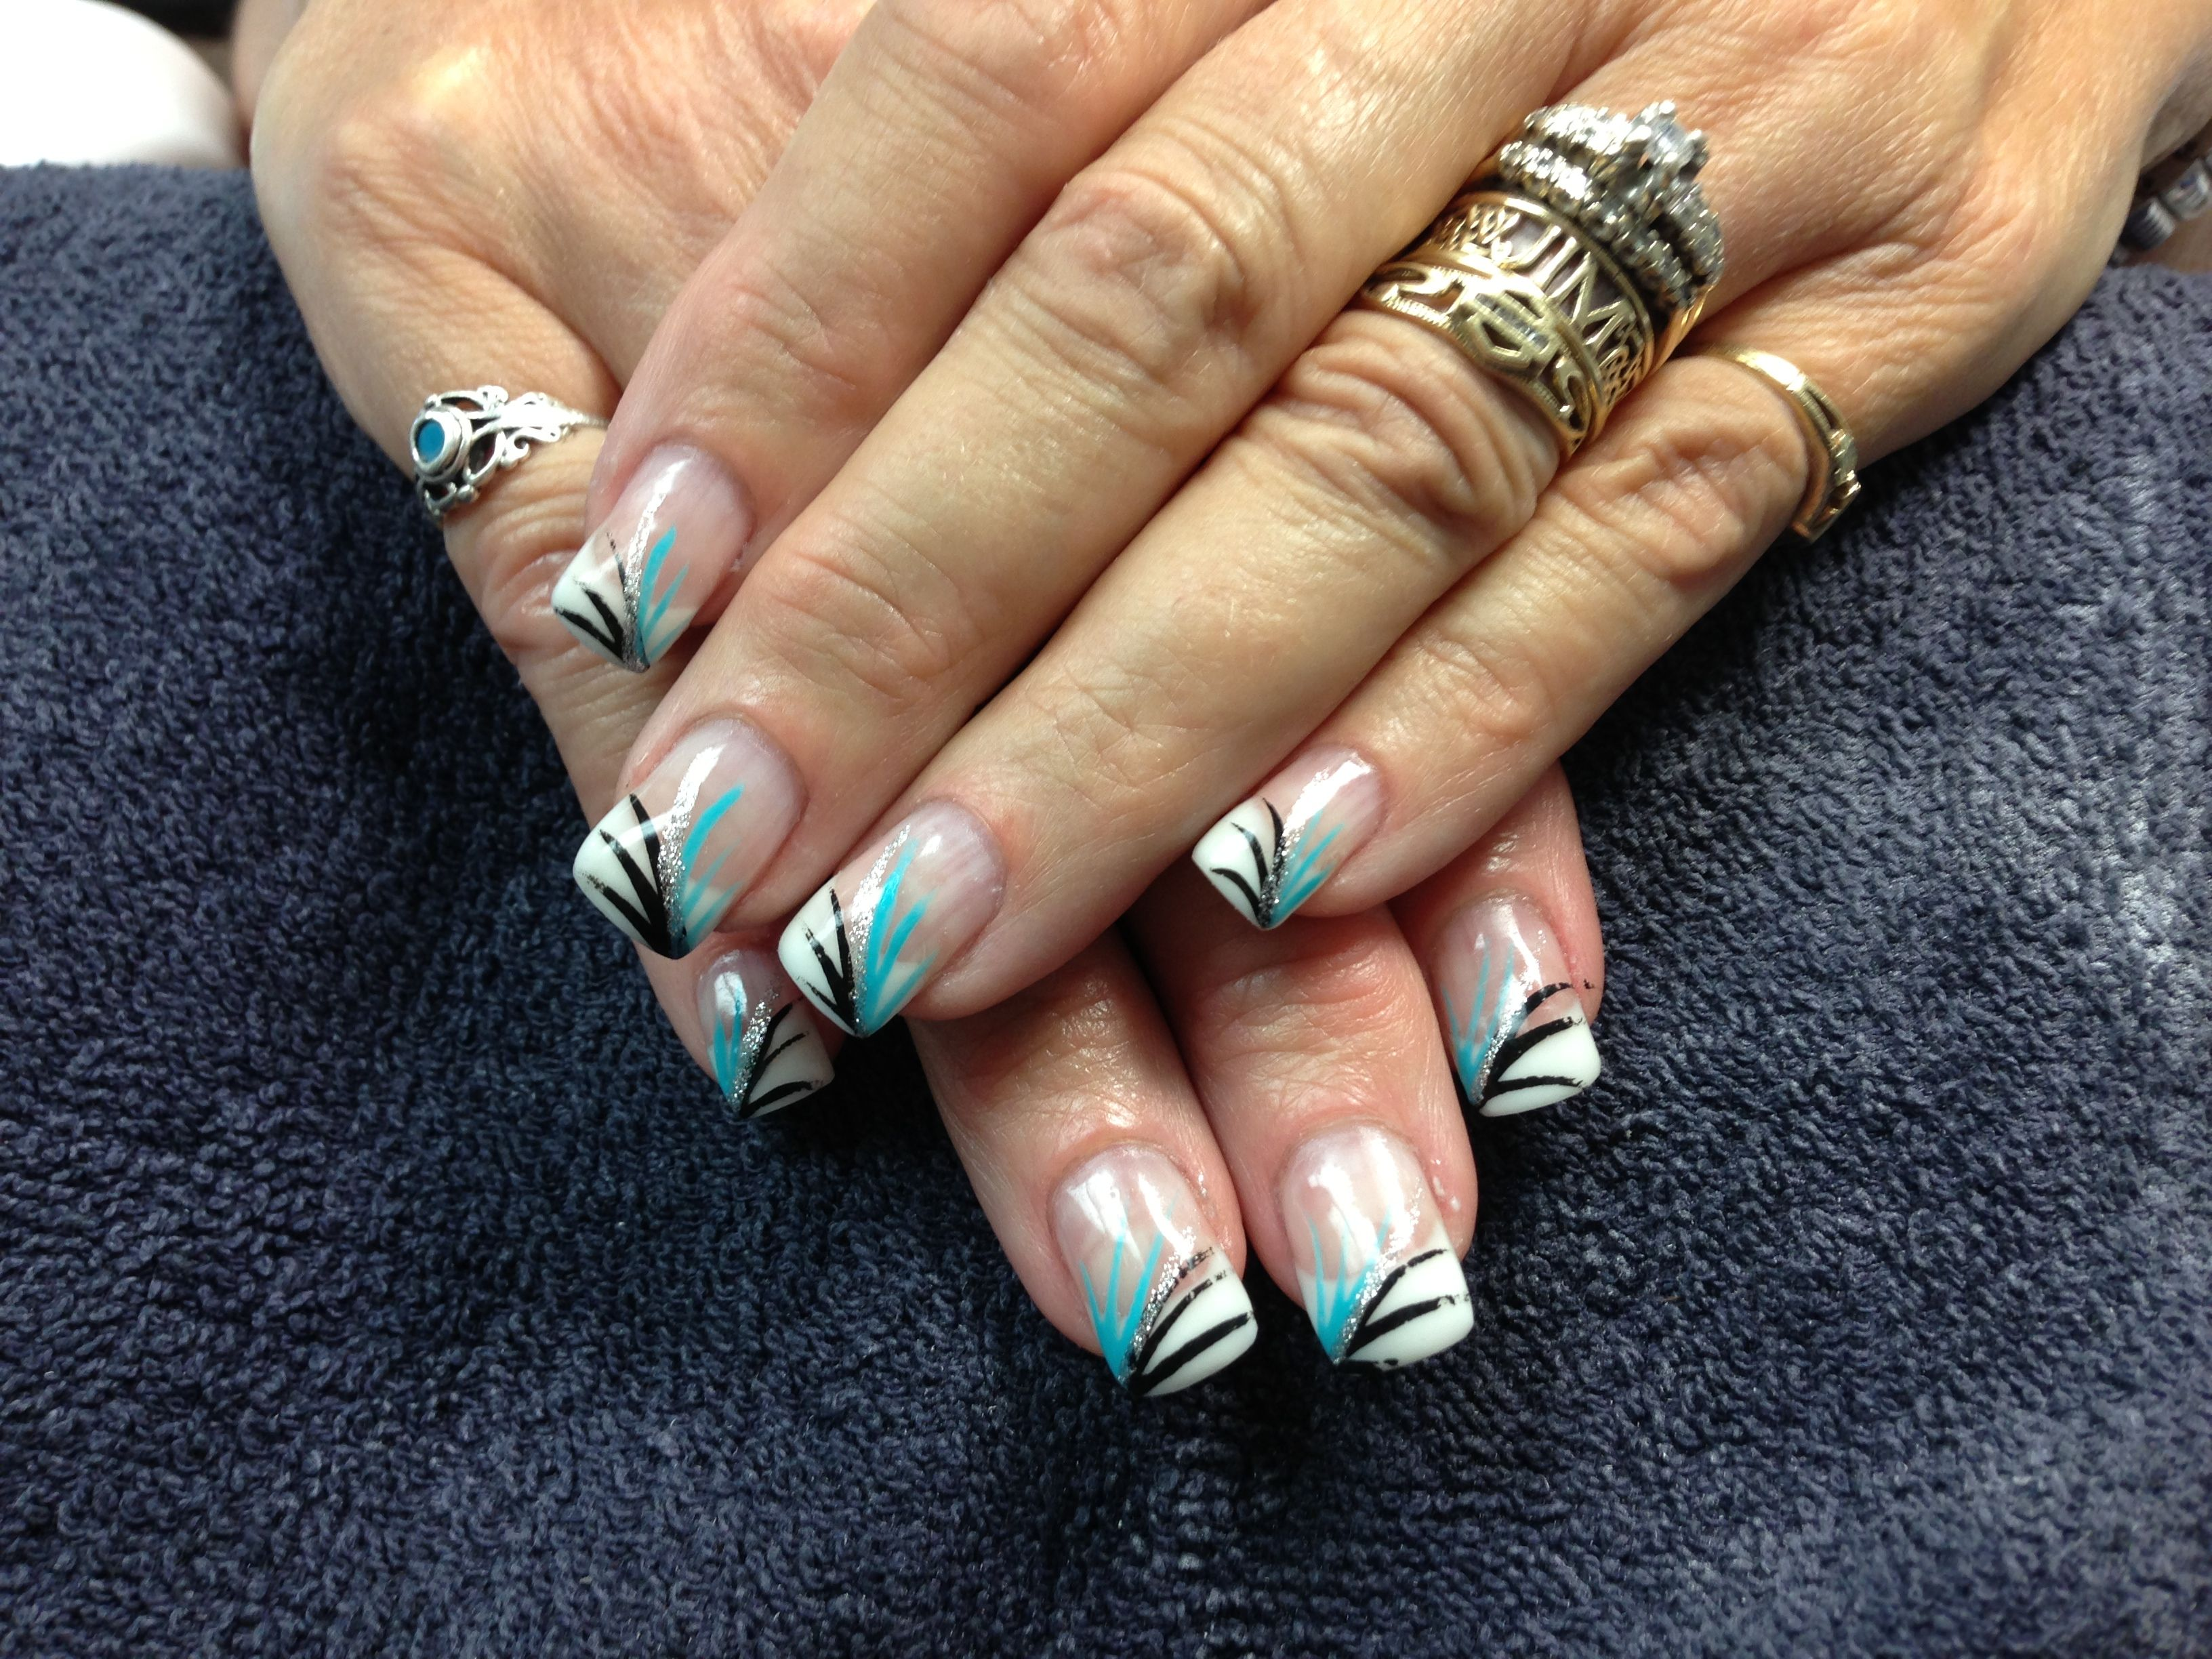 Mandy\u0027s nails. White tips with teal, black and silver. Gel